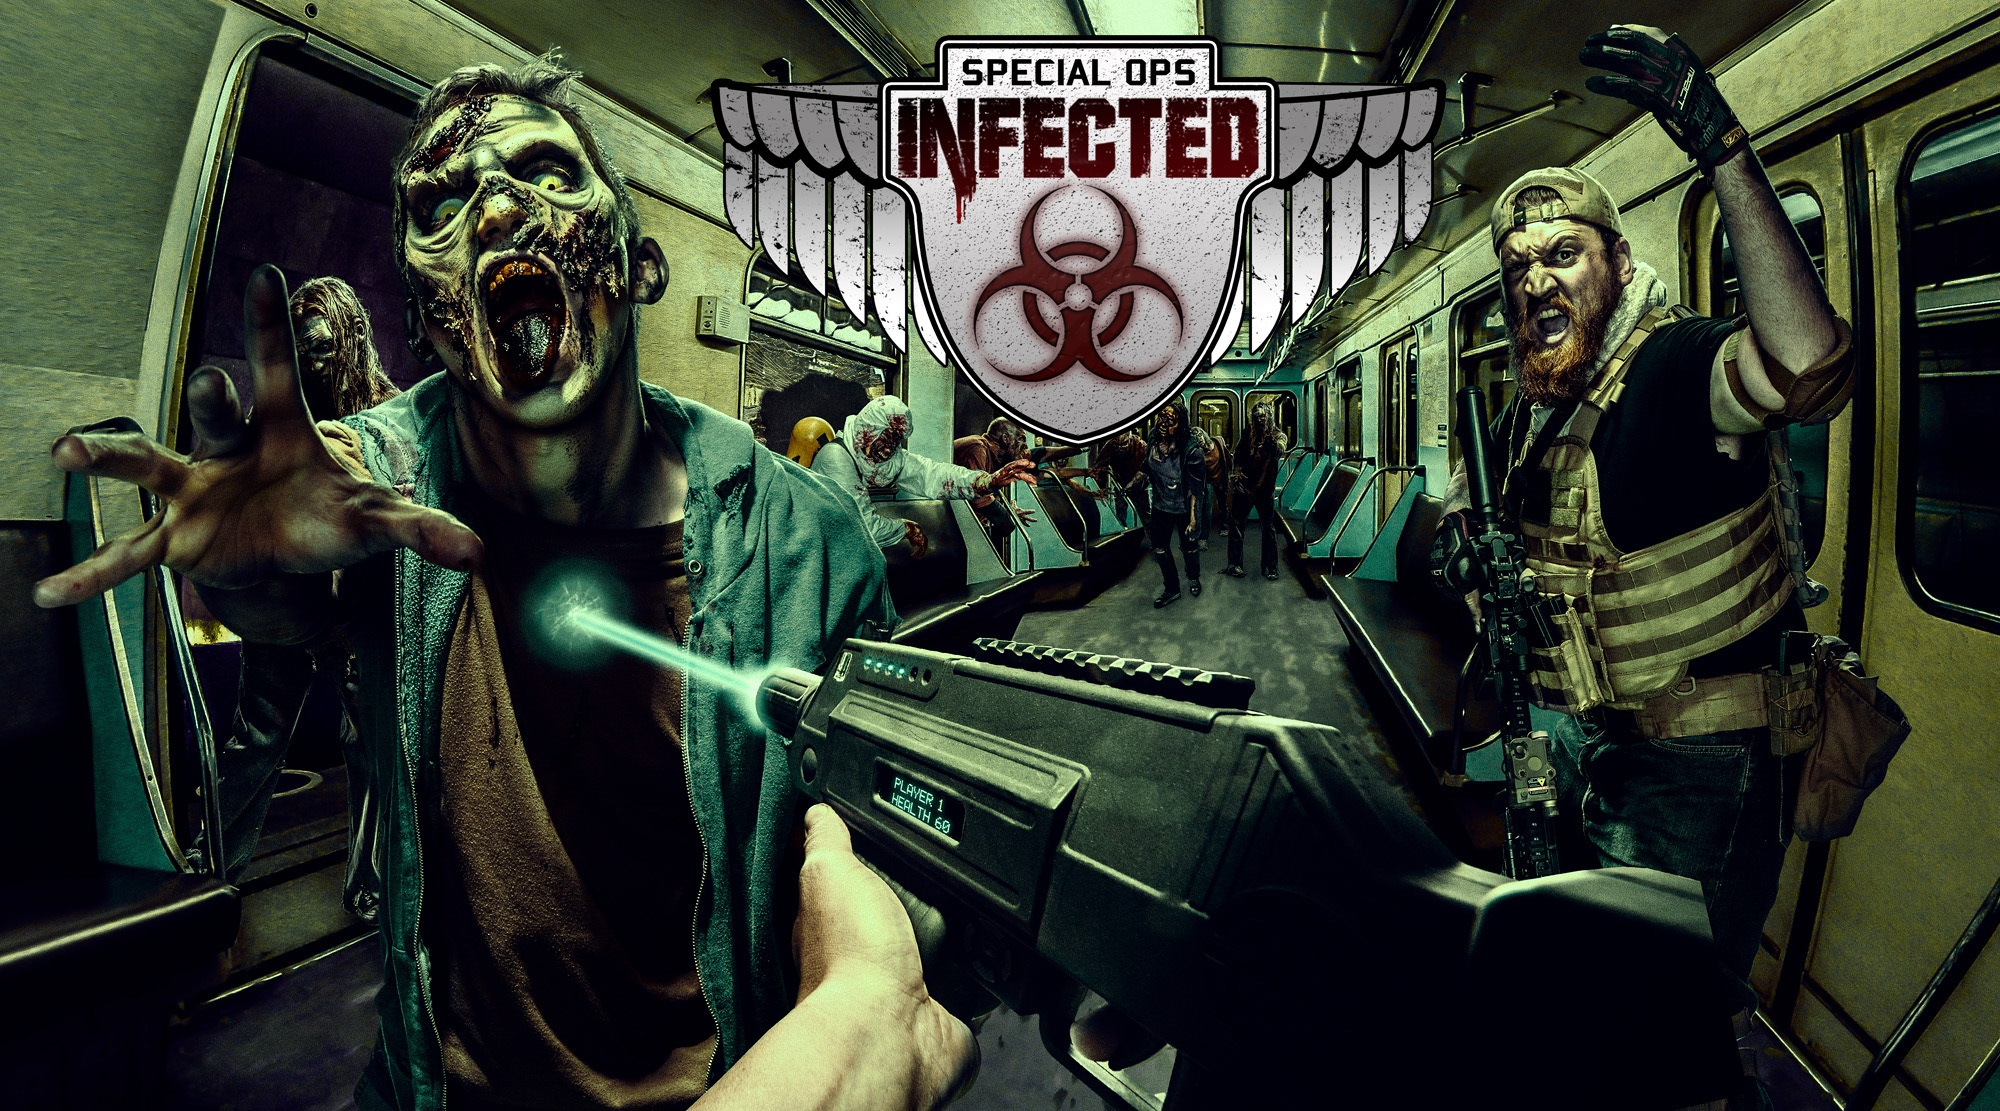 special-ops-infected-2016-hero-image-with-logo-1